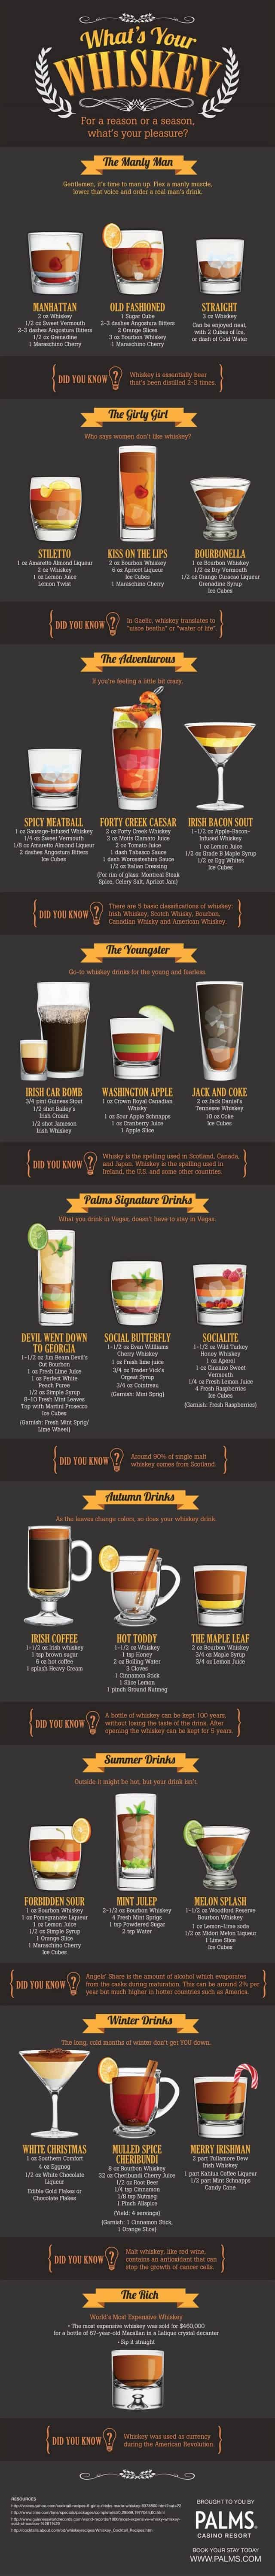 xPalms_Whats_Your_Whiskey_Infographic.jpg.pagespeed.ic.t8wrQo8gc9 (1)